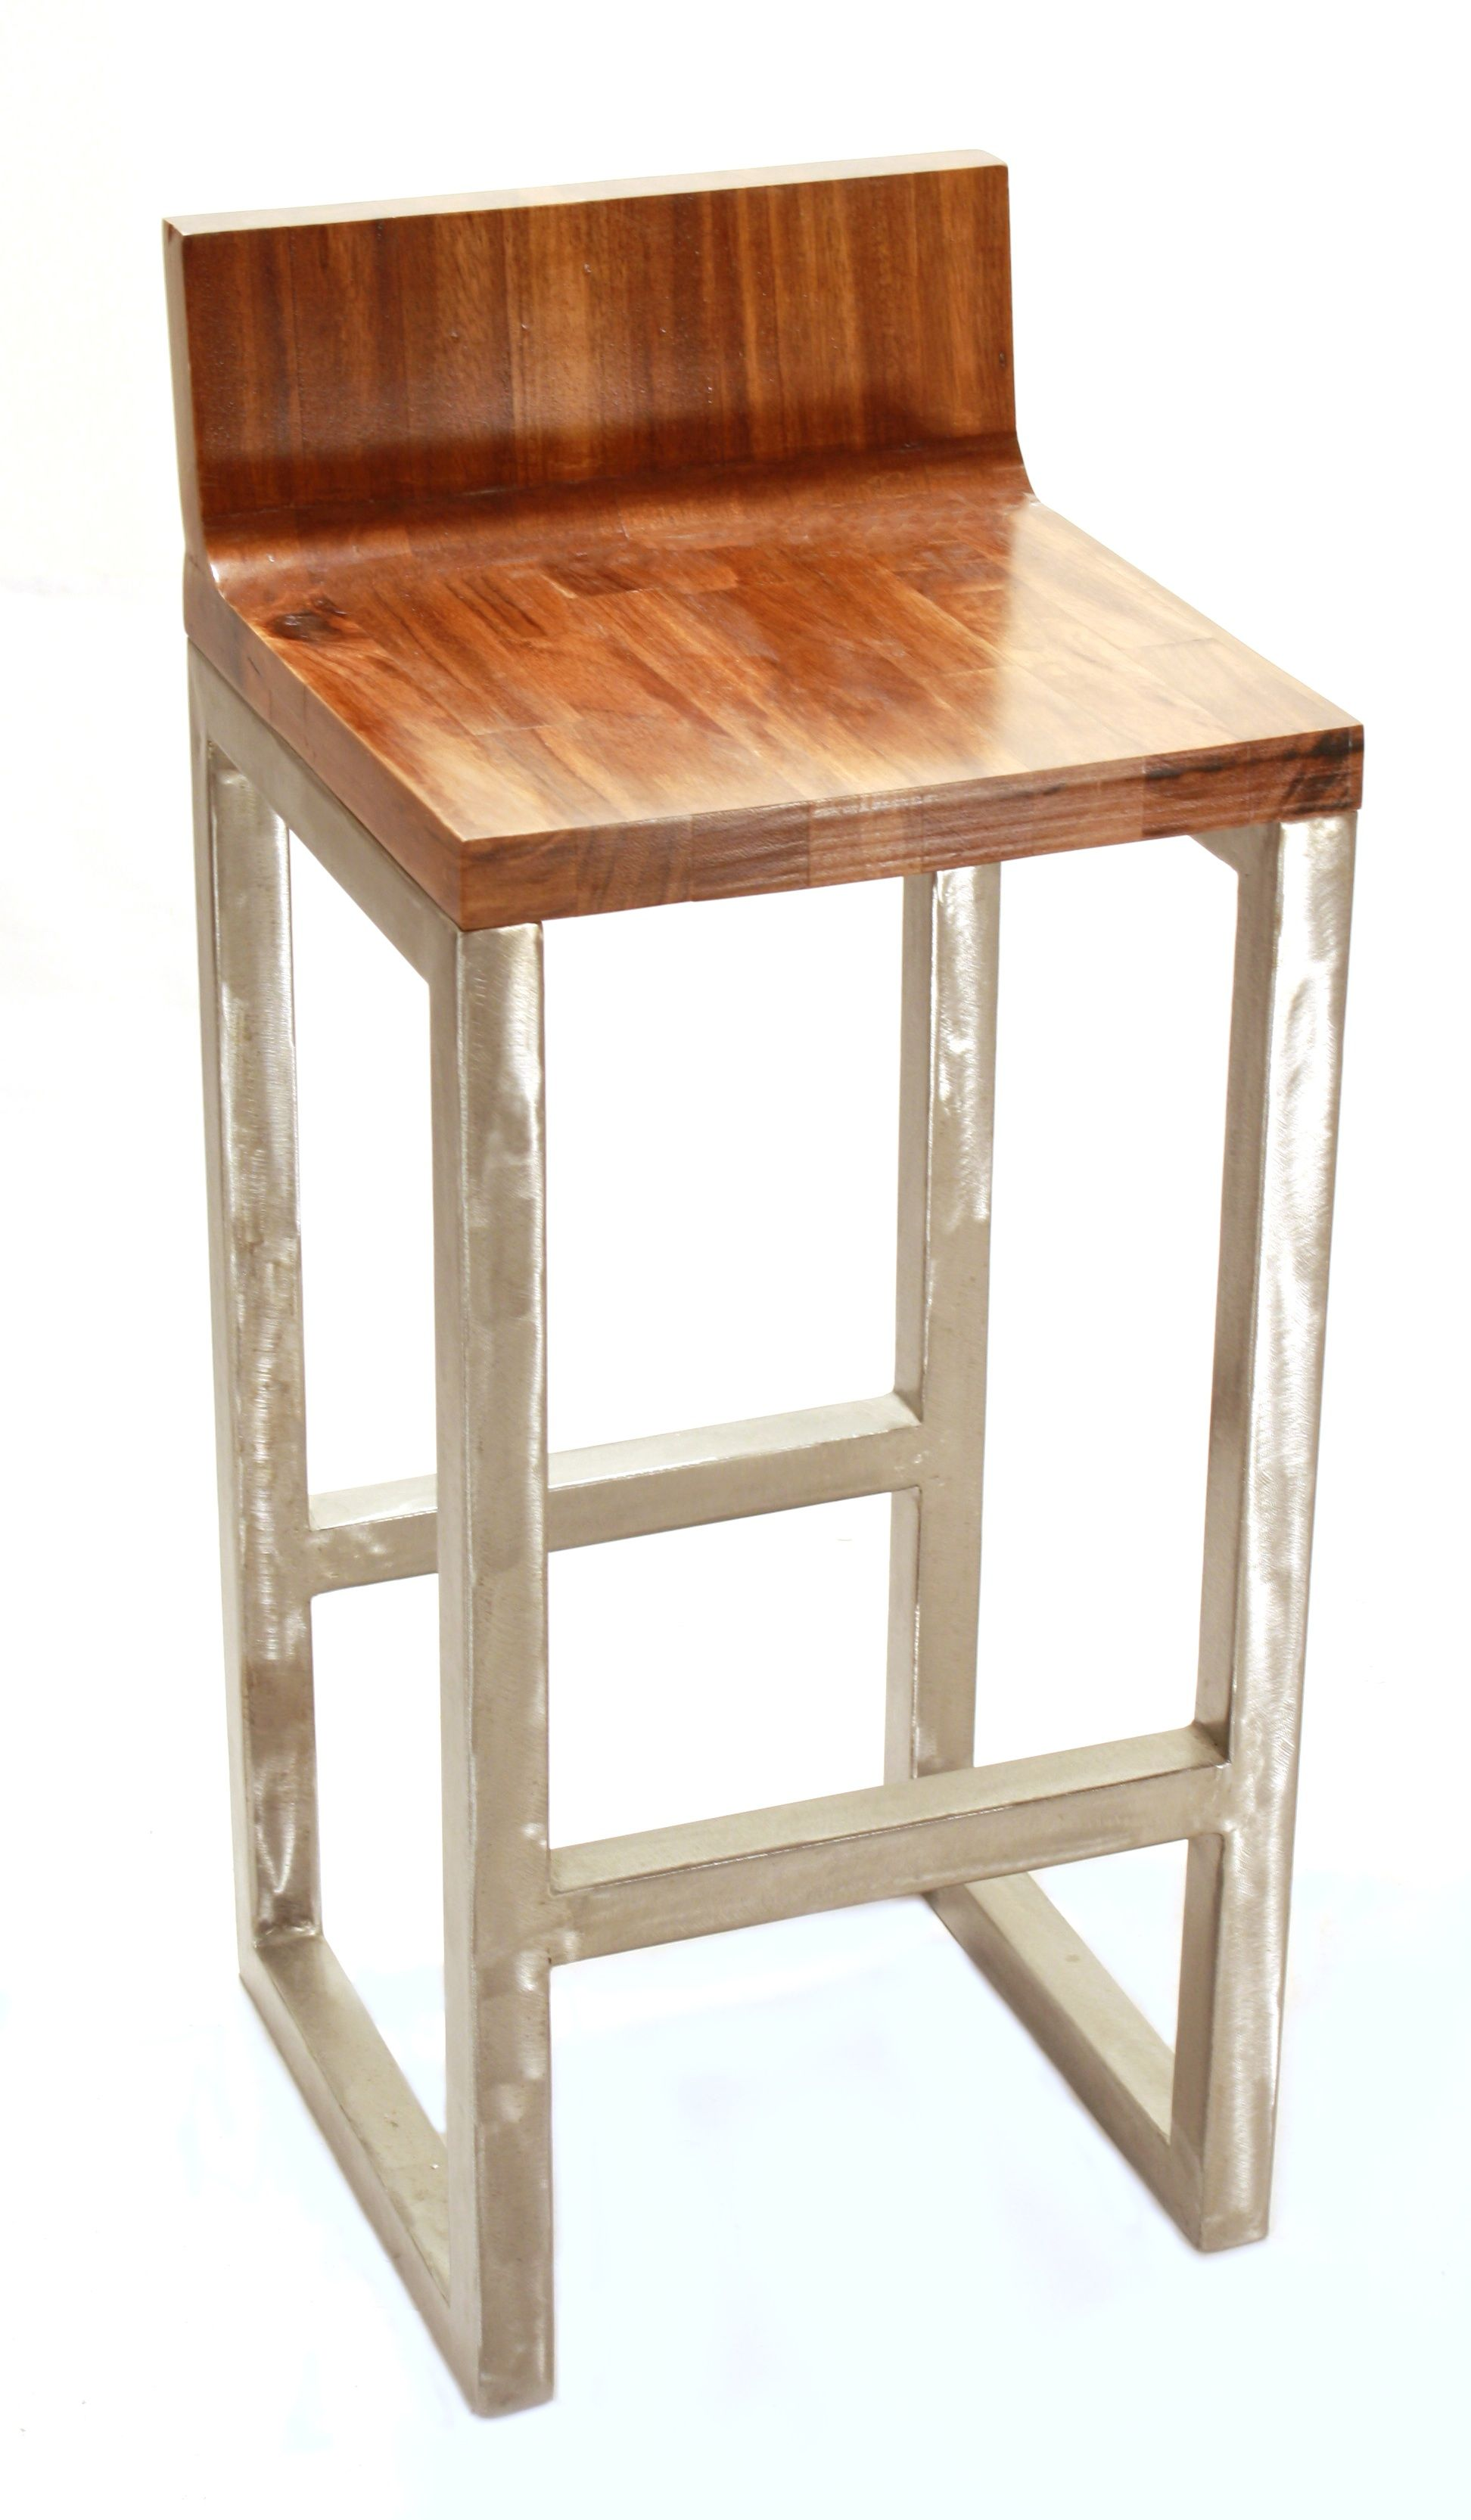 Mueble Bar Industrial Furniture Light Brown Wooden Bar Stools With Back On